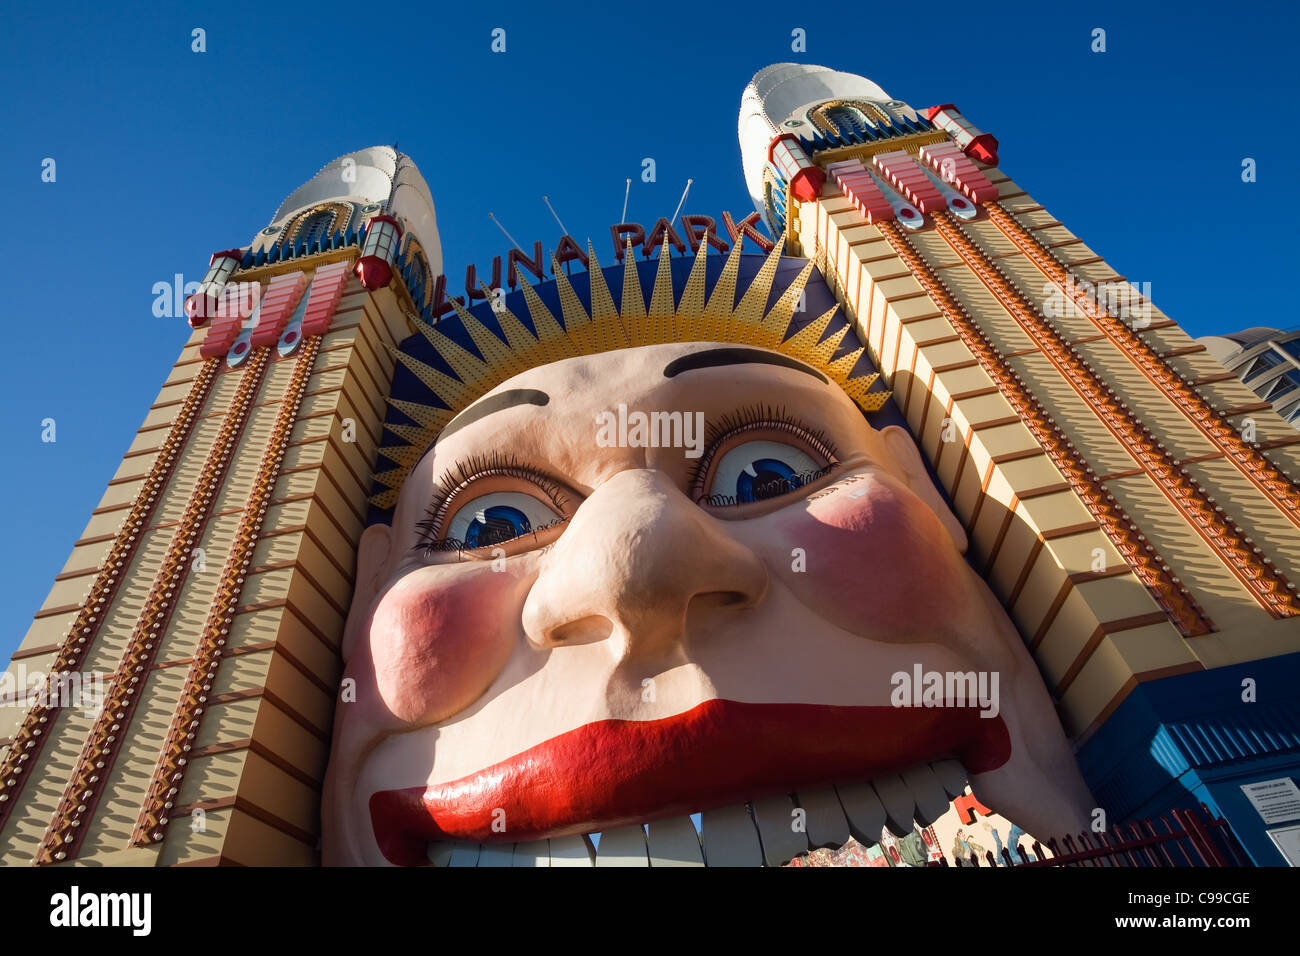 The smiling face entrance of Luna Park at Milson's Point.  Sydney, New South Wales, Australia - Stock Image